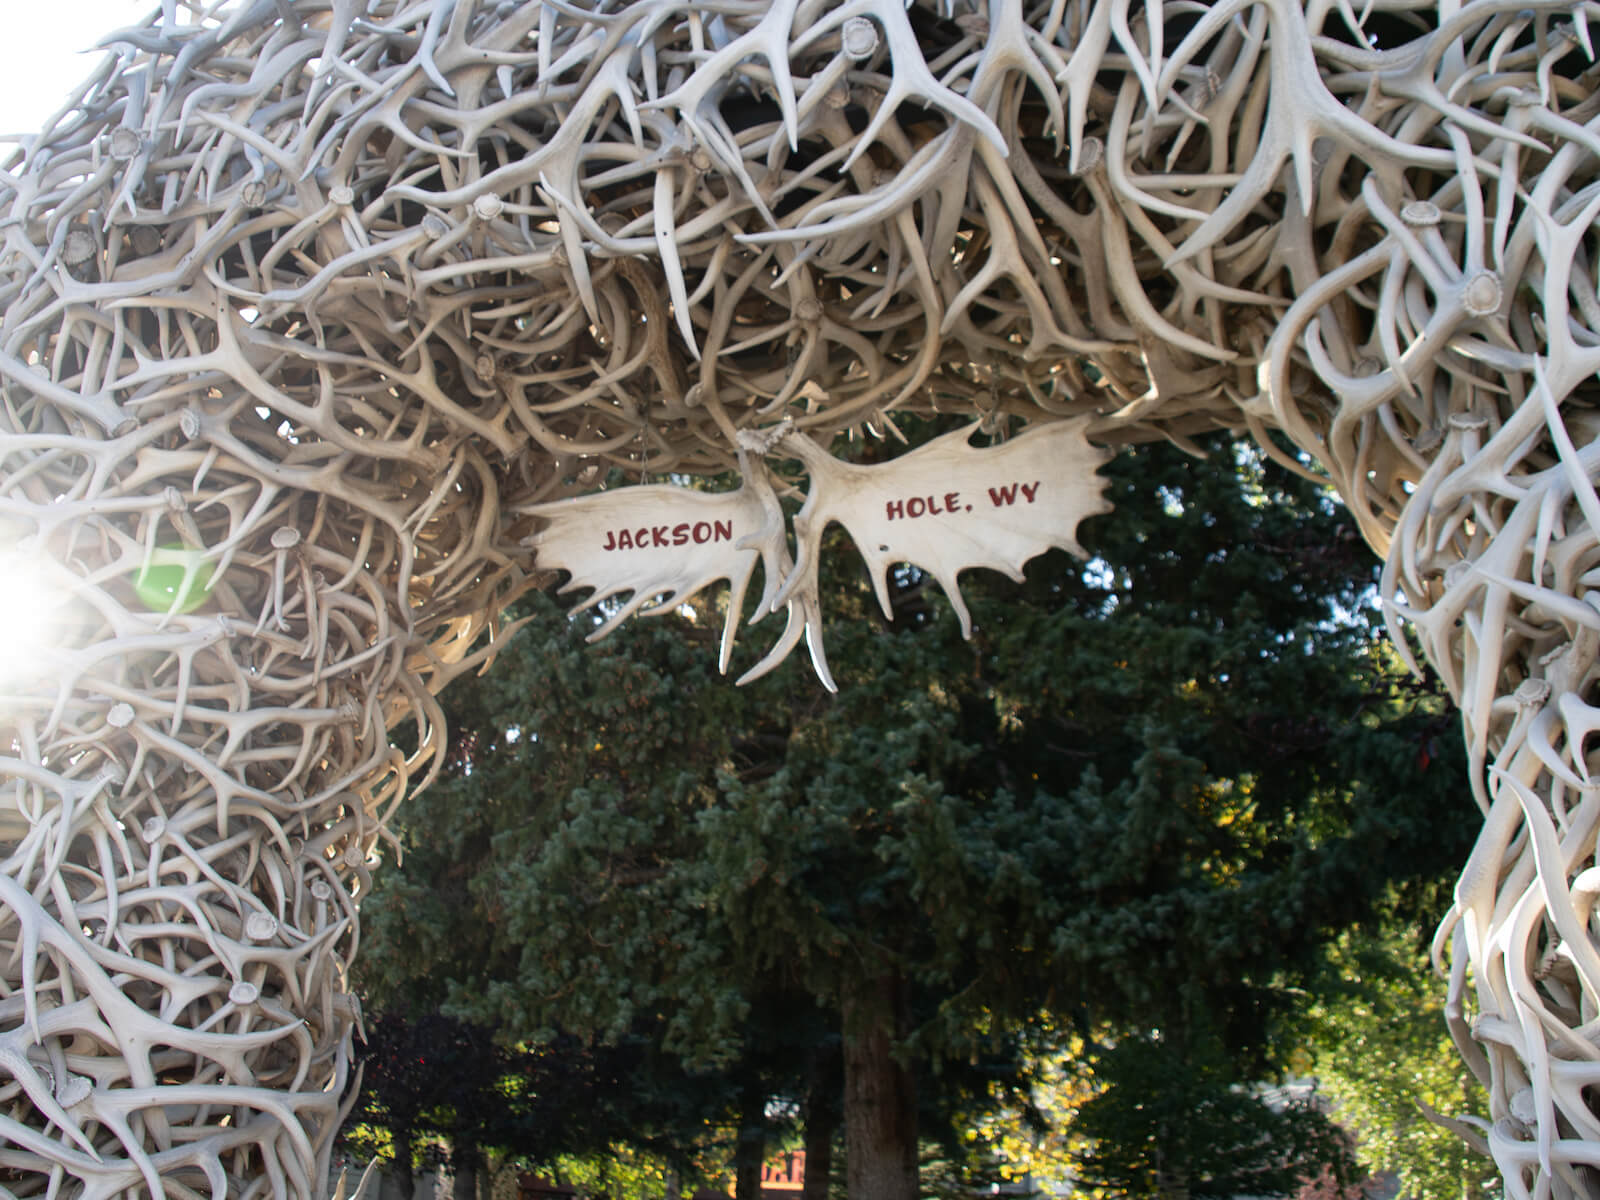 Iconic elk antler arches that frame Jackson's town square